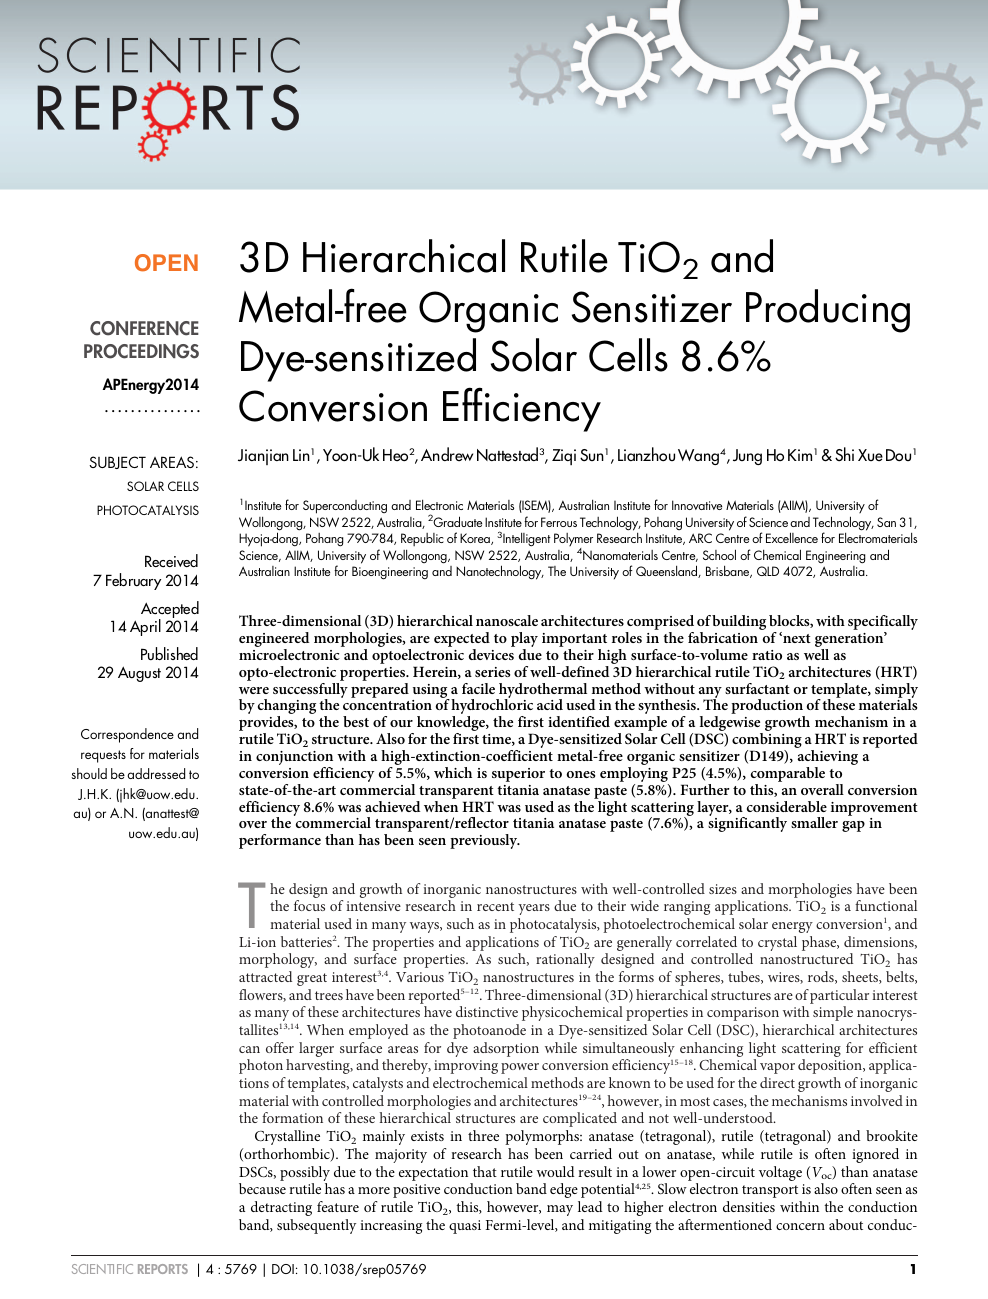 3D Hierarchical Rutile TiO2 and Metal-free Organic